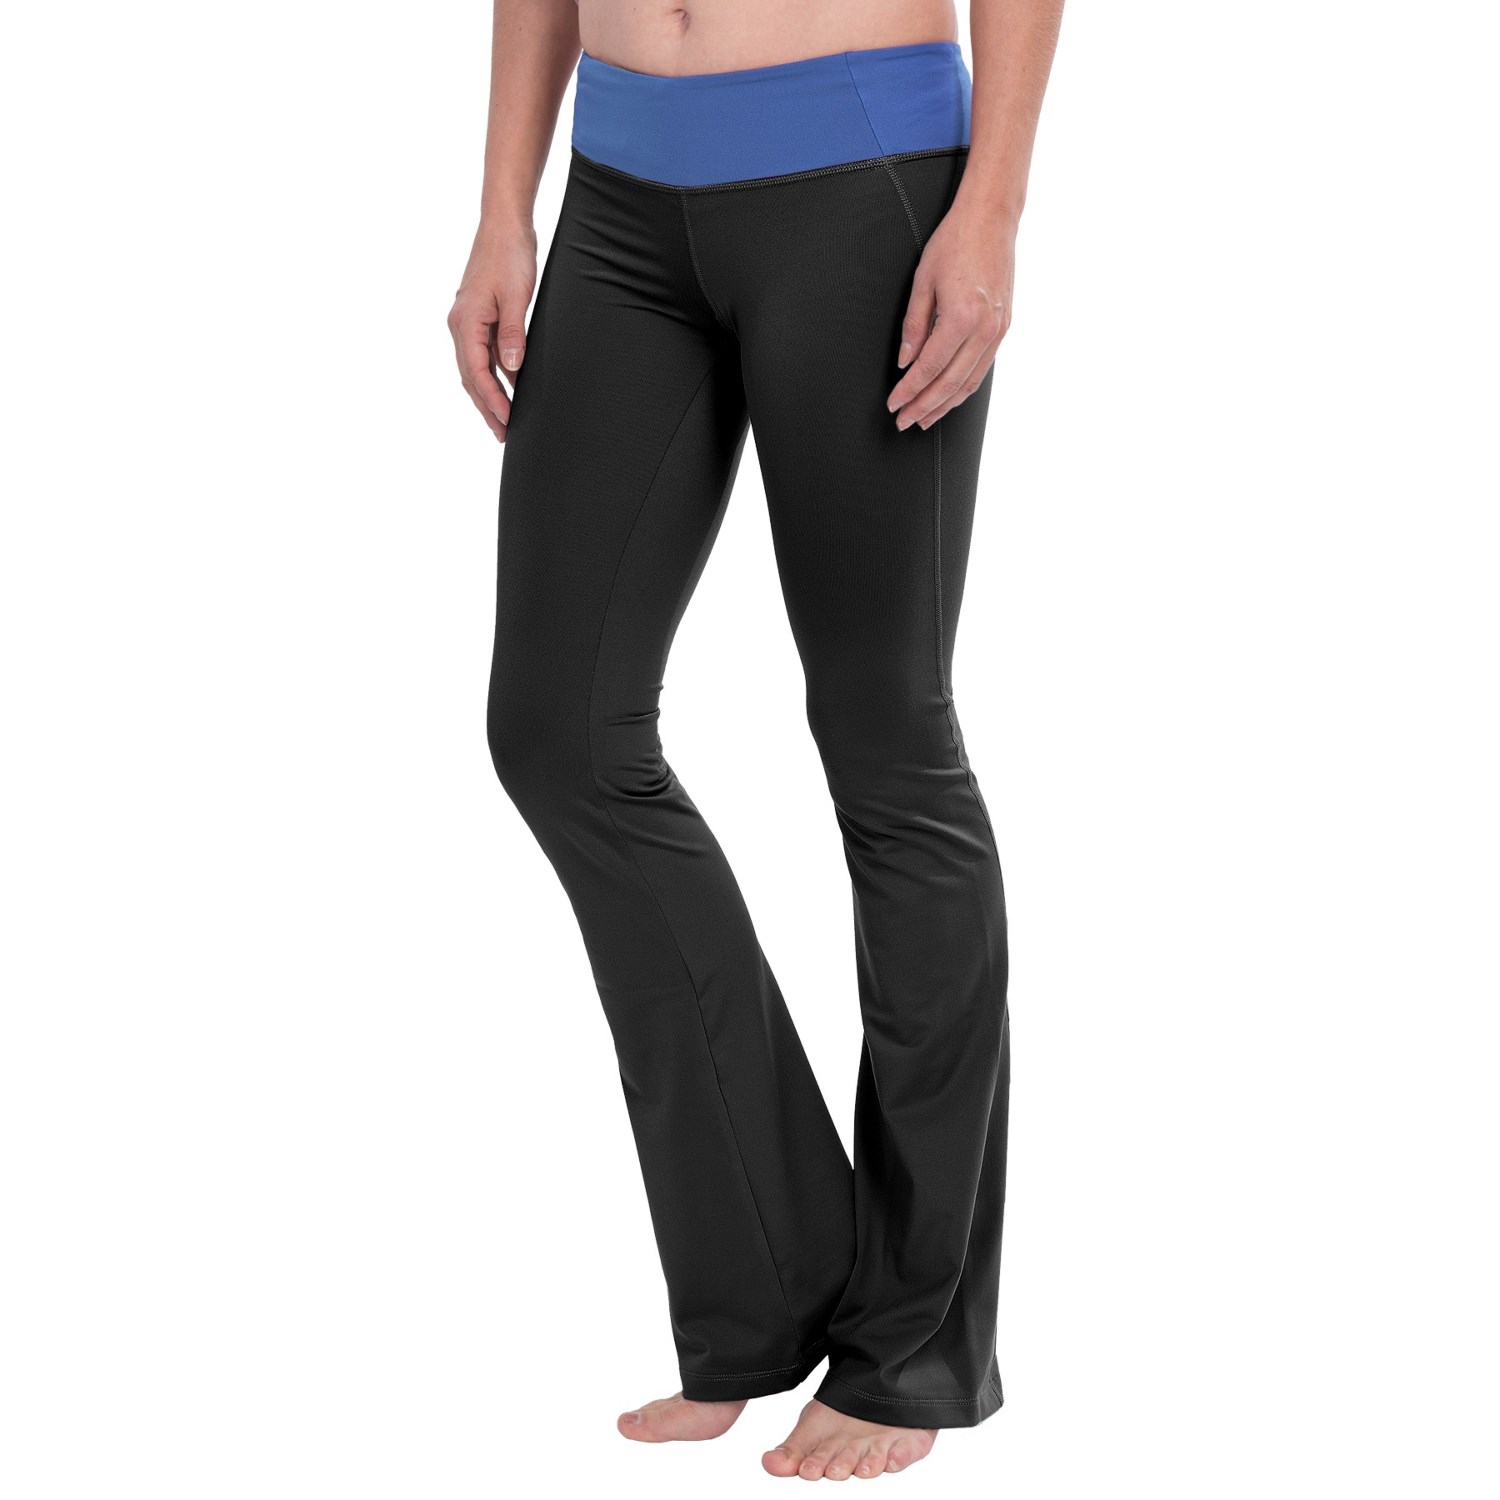 Featuring fold-over shafts with decorative zippers, these synthetic Athleta offers women's yoga clothing, swimwear, running clothing and athletic clothing